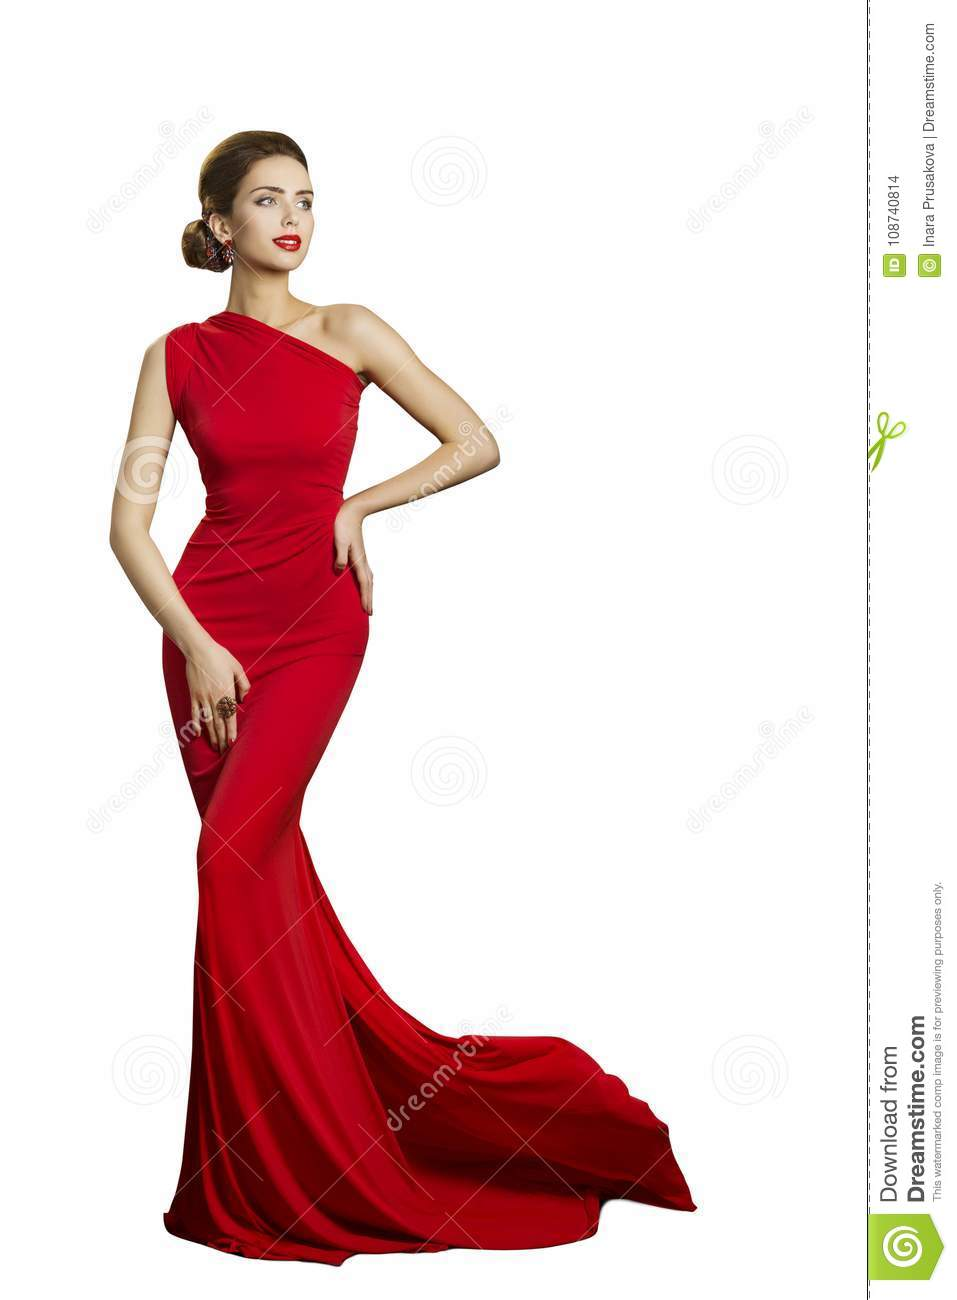 Lady Evening Dress, Elegant Woman in Long Gown, Fashion Tail